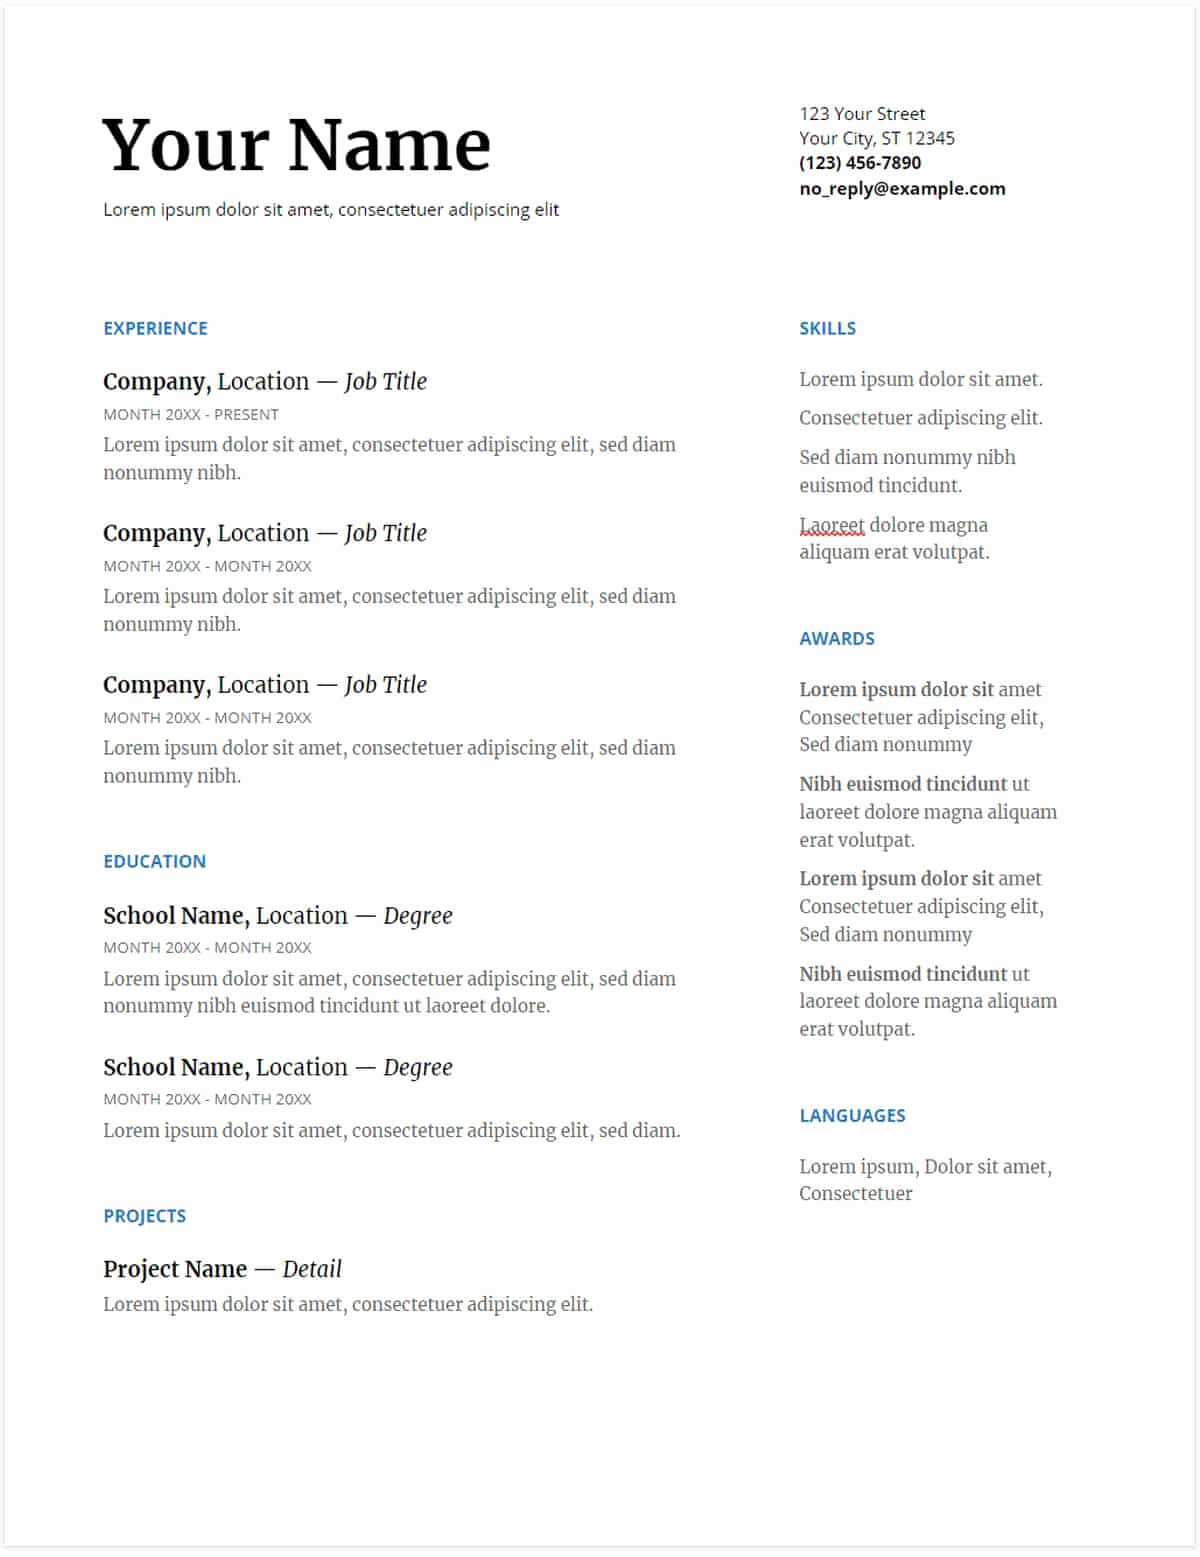 Google Docs Budget Template New Resume Template Google Docs